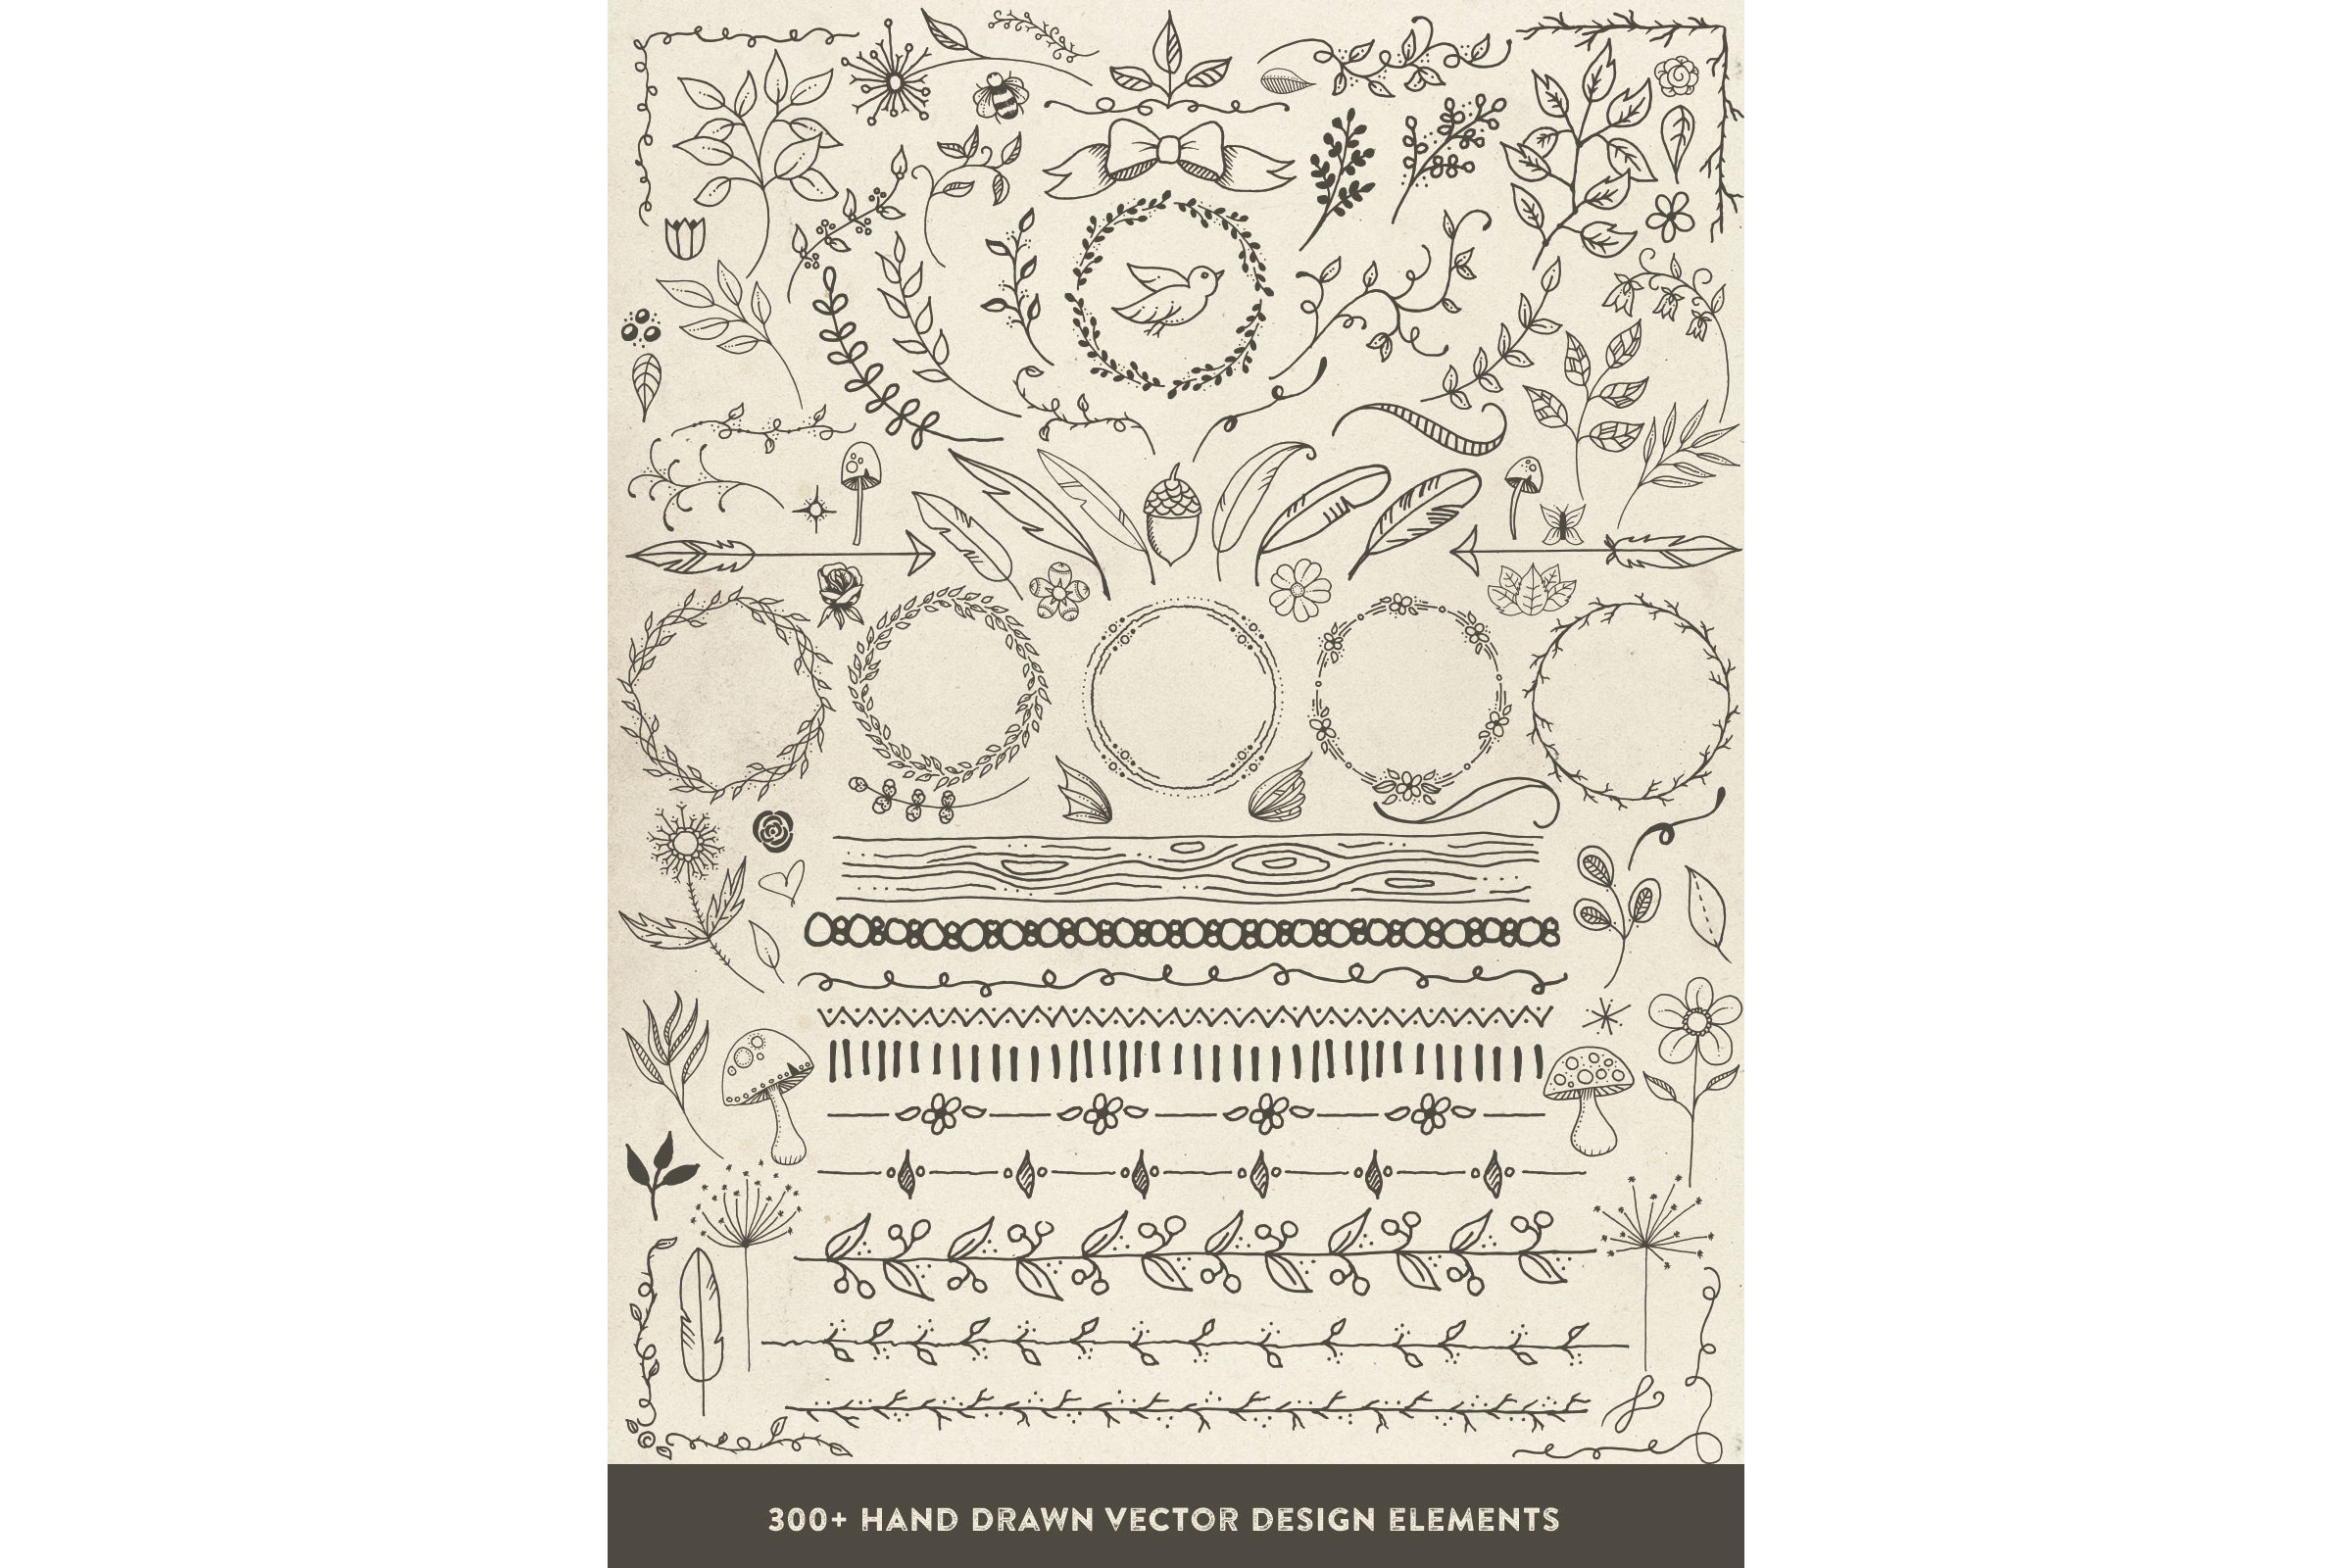 Hand Drawn Vector Design Elements example image 2